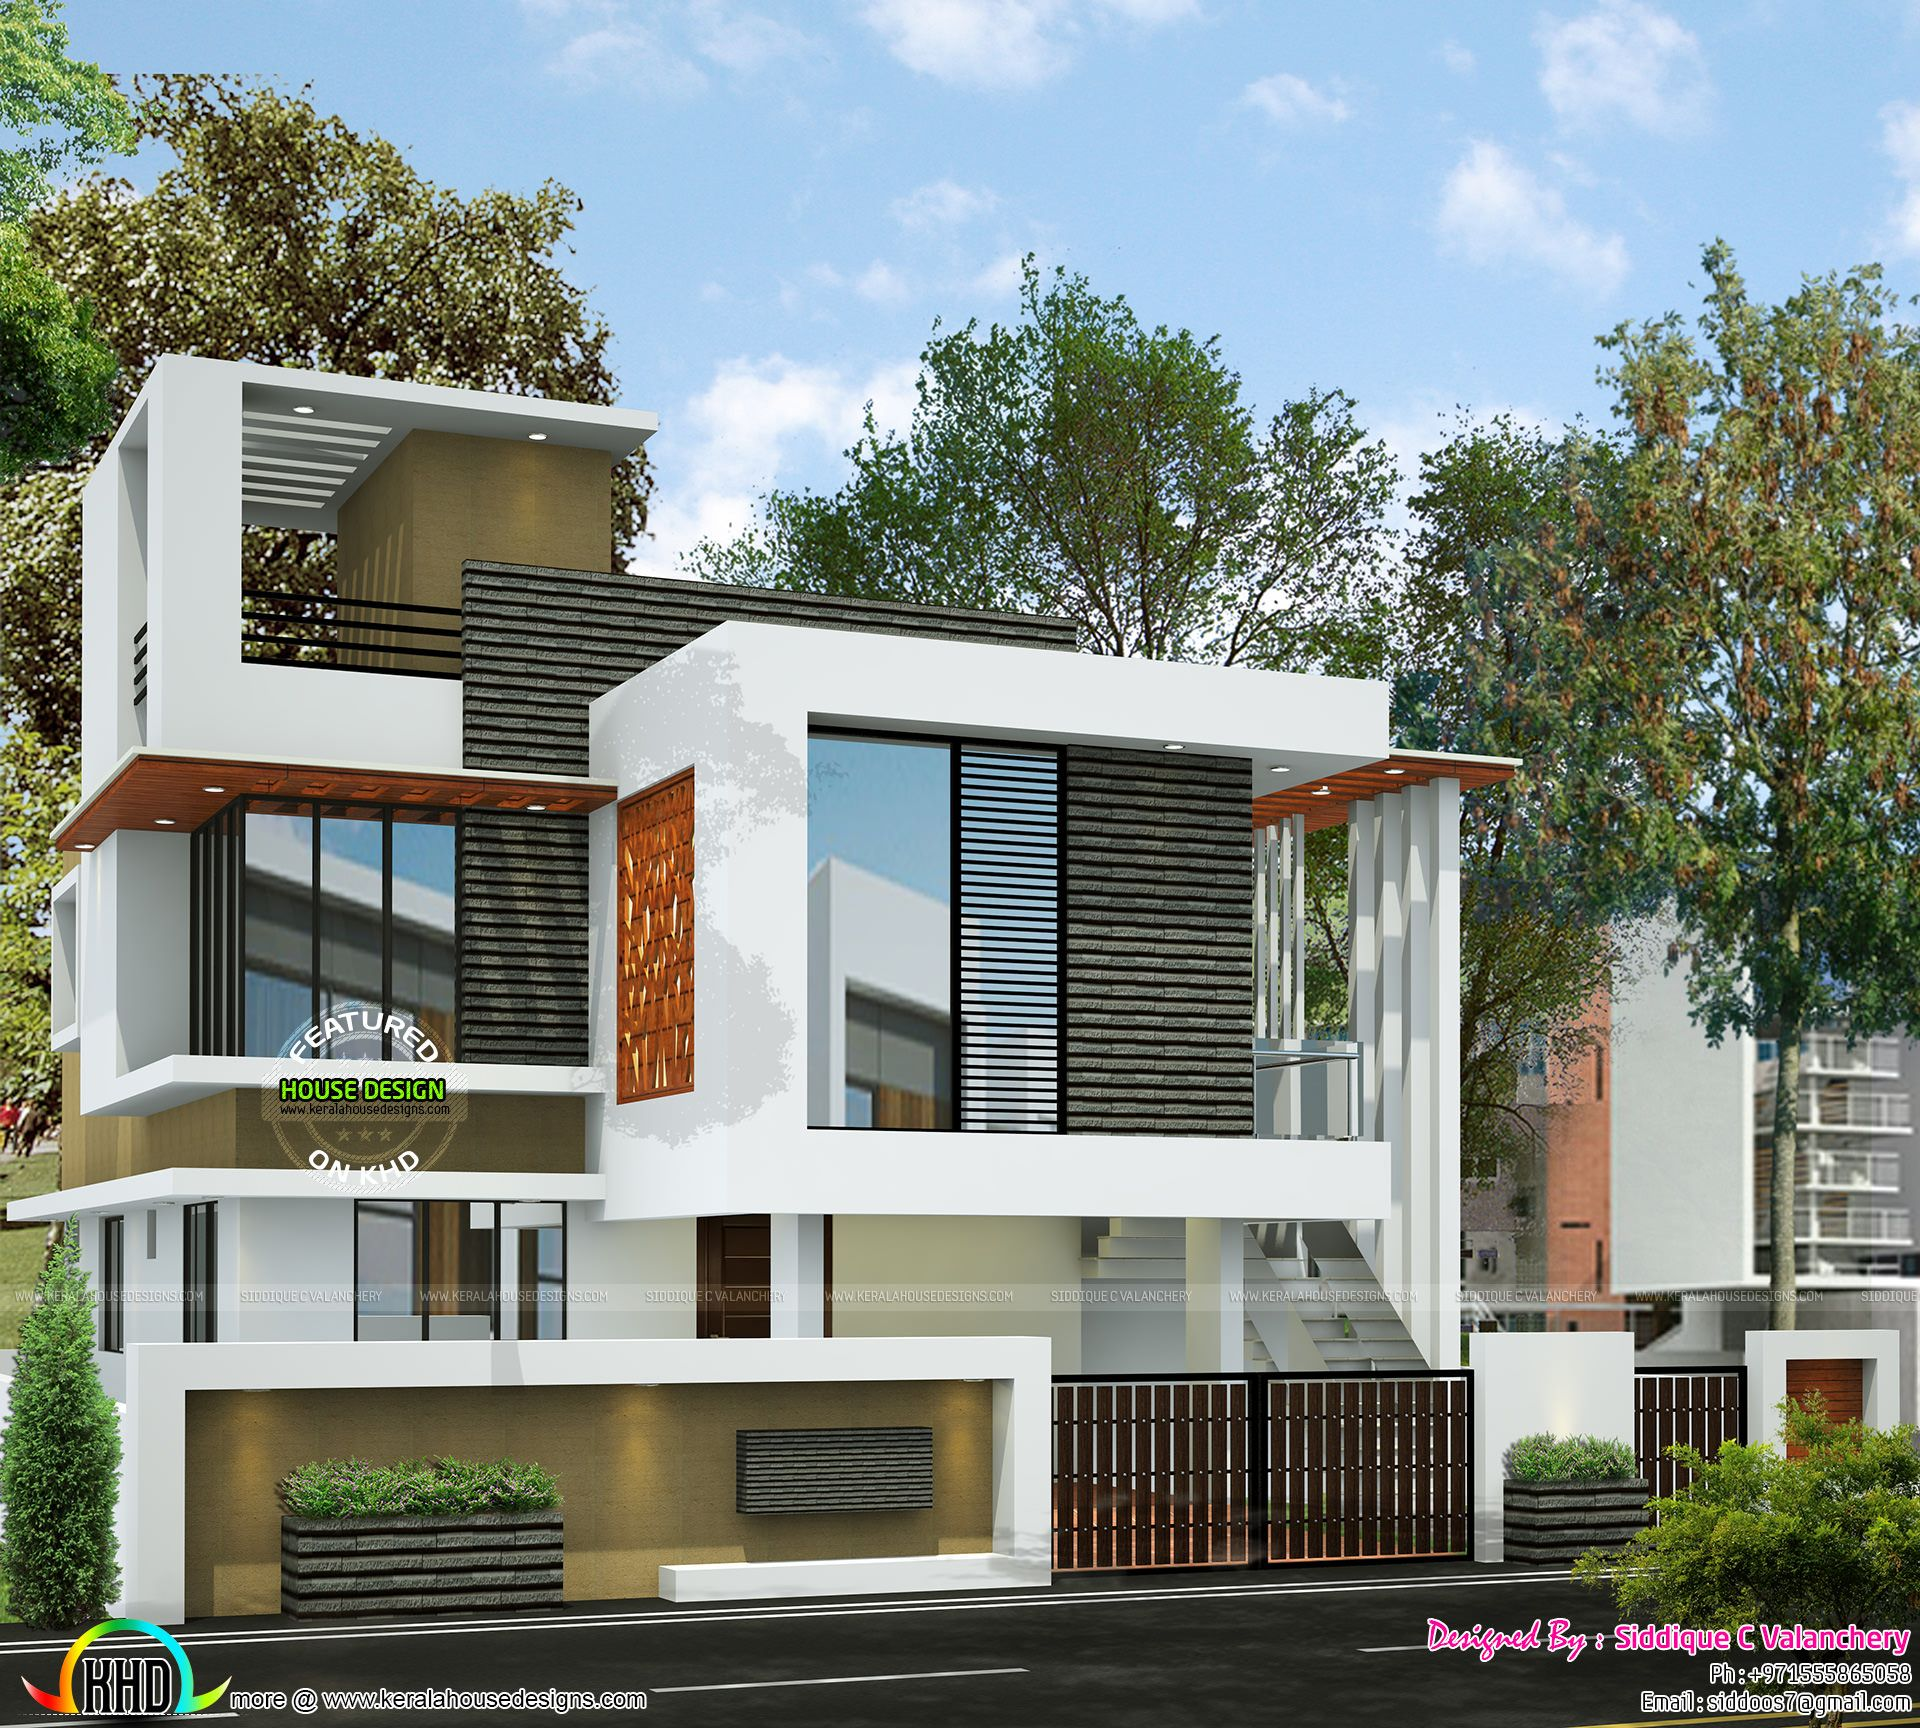 Proposed new house building elevation facade compound wall design also single floor turning to  double home rh pinterest